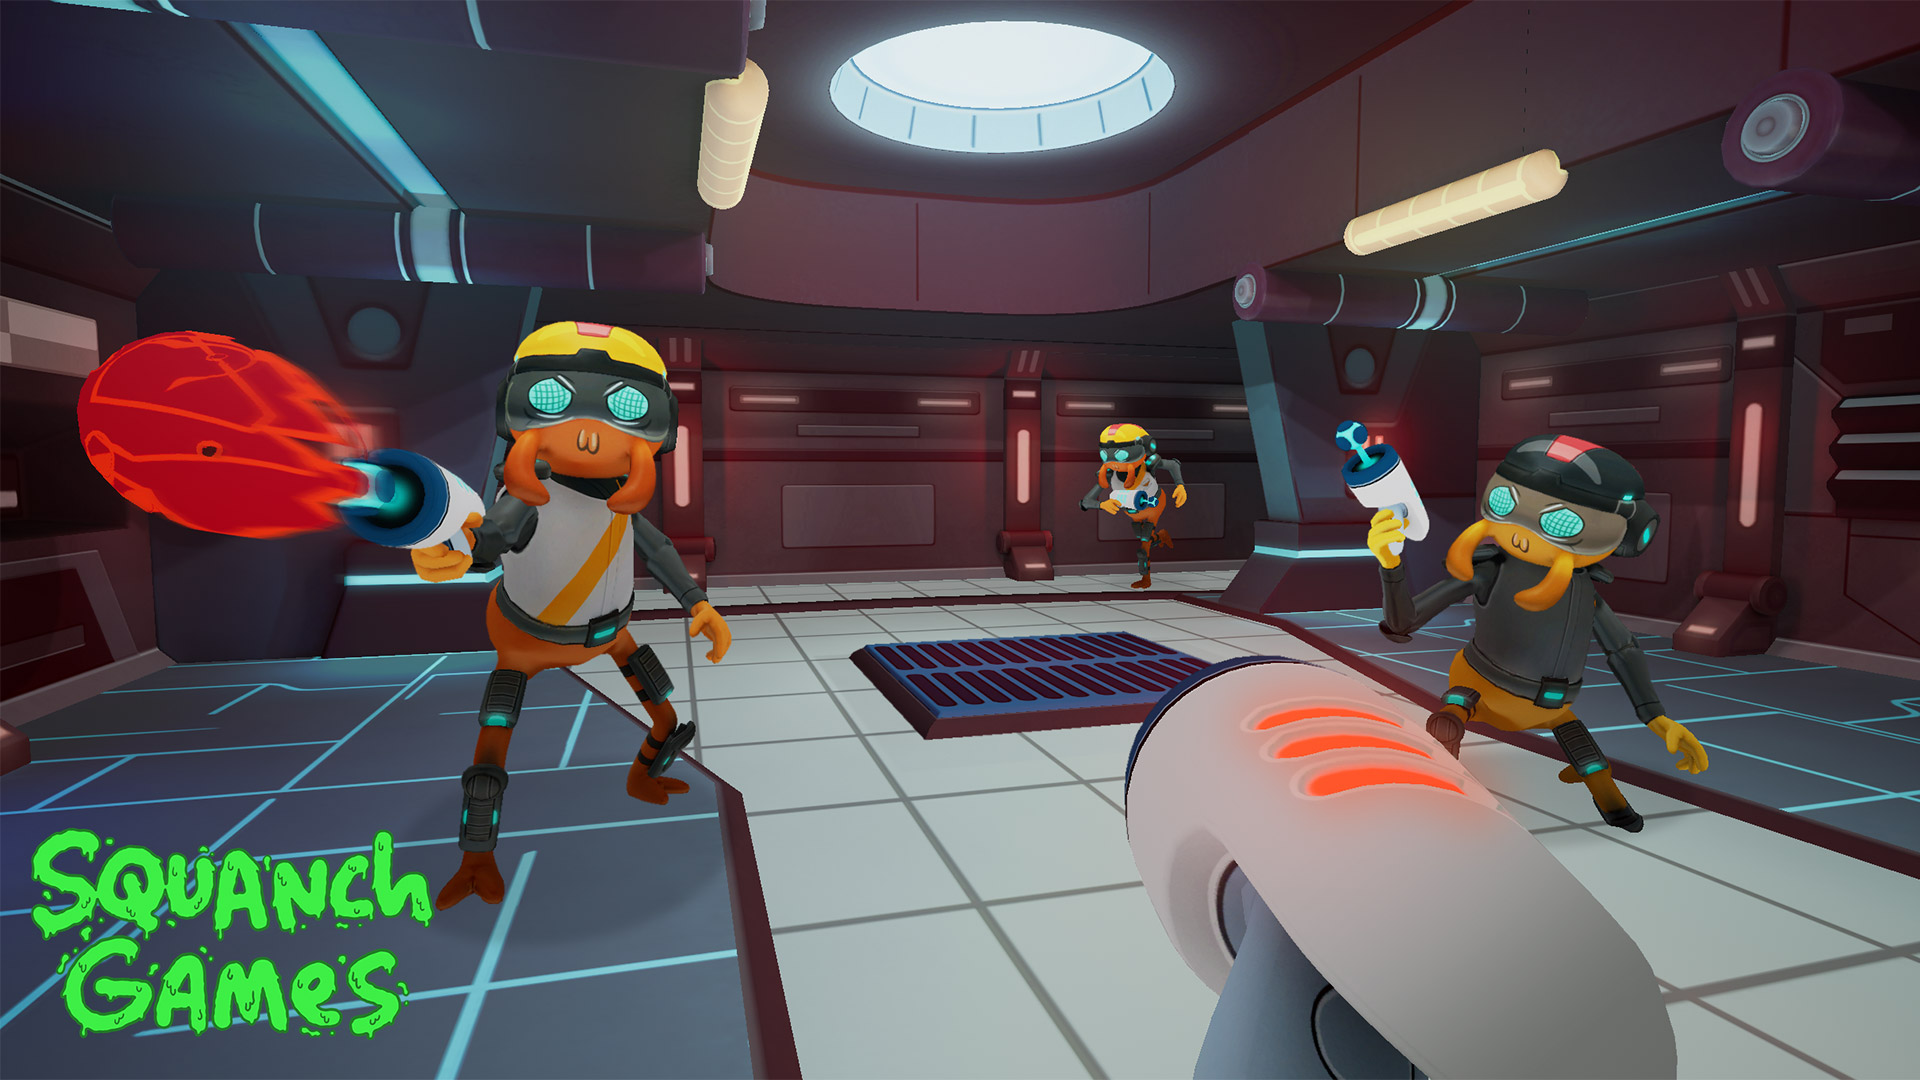 Justin Roiland's Squanch Game Studio To Release New VR Game Called Dr. Splorchy Presents: SPACE HEROES